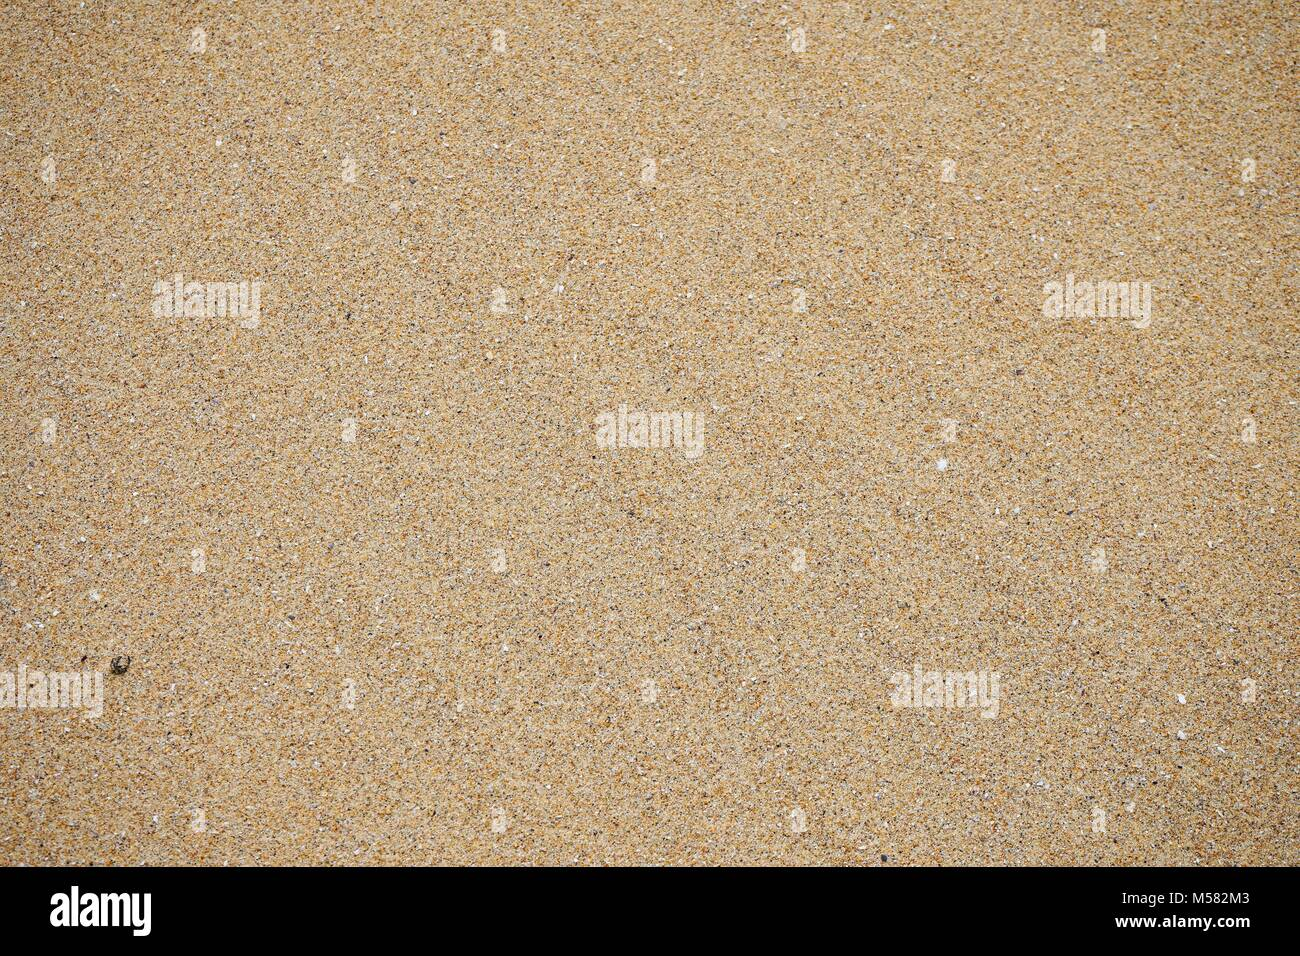 Sand with small pieces of shell grit on a section of beach closeup. - Stock Image